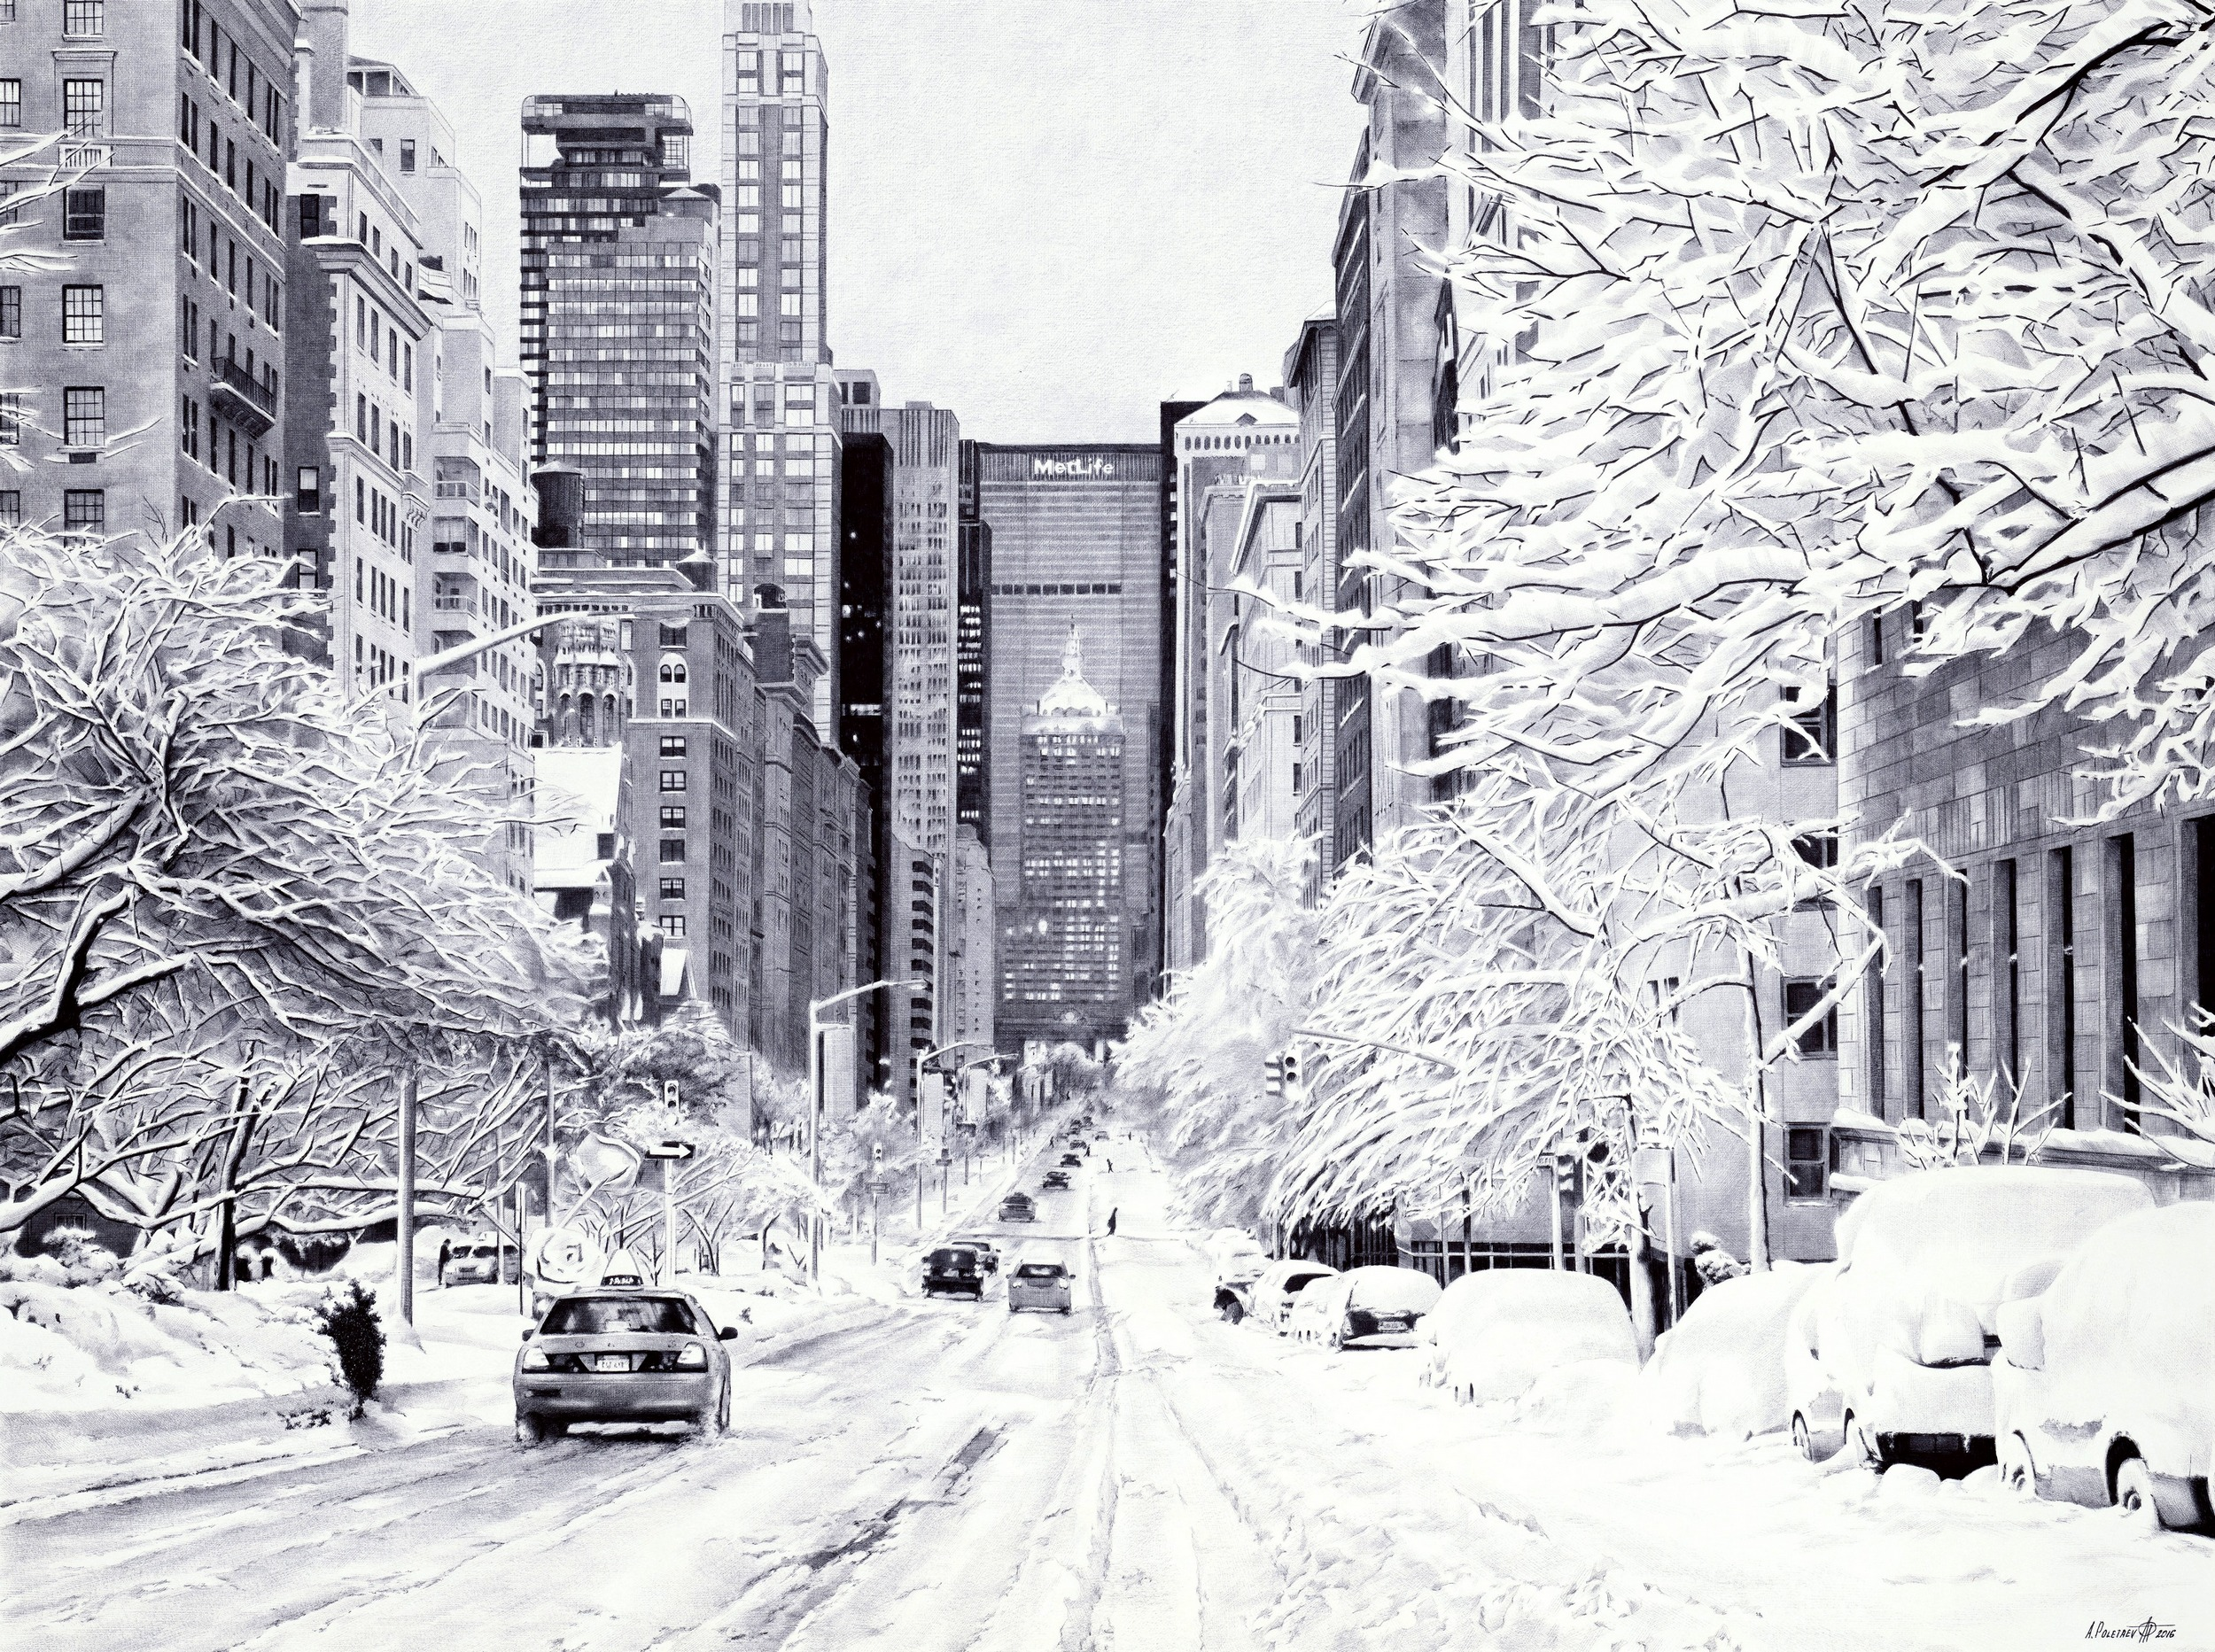 A-SCAN-POLETAEV-Snowy_New_York